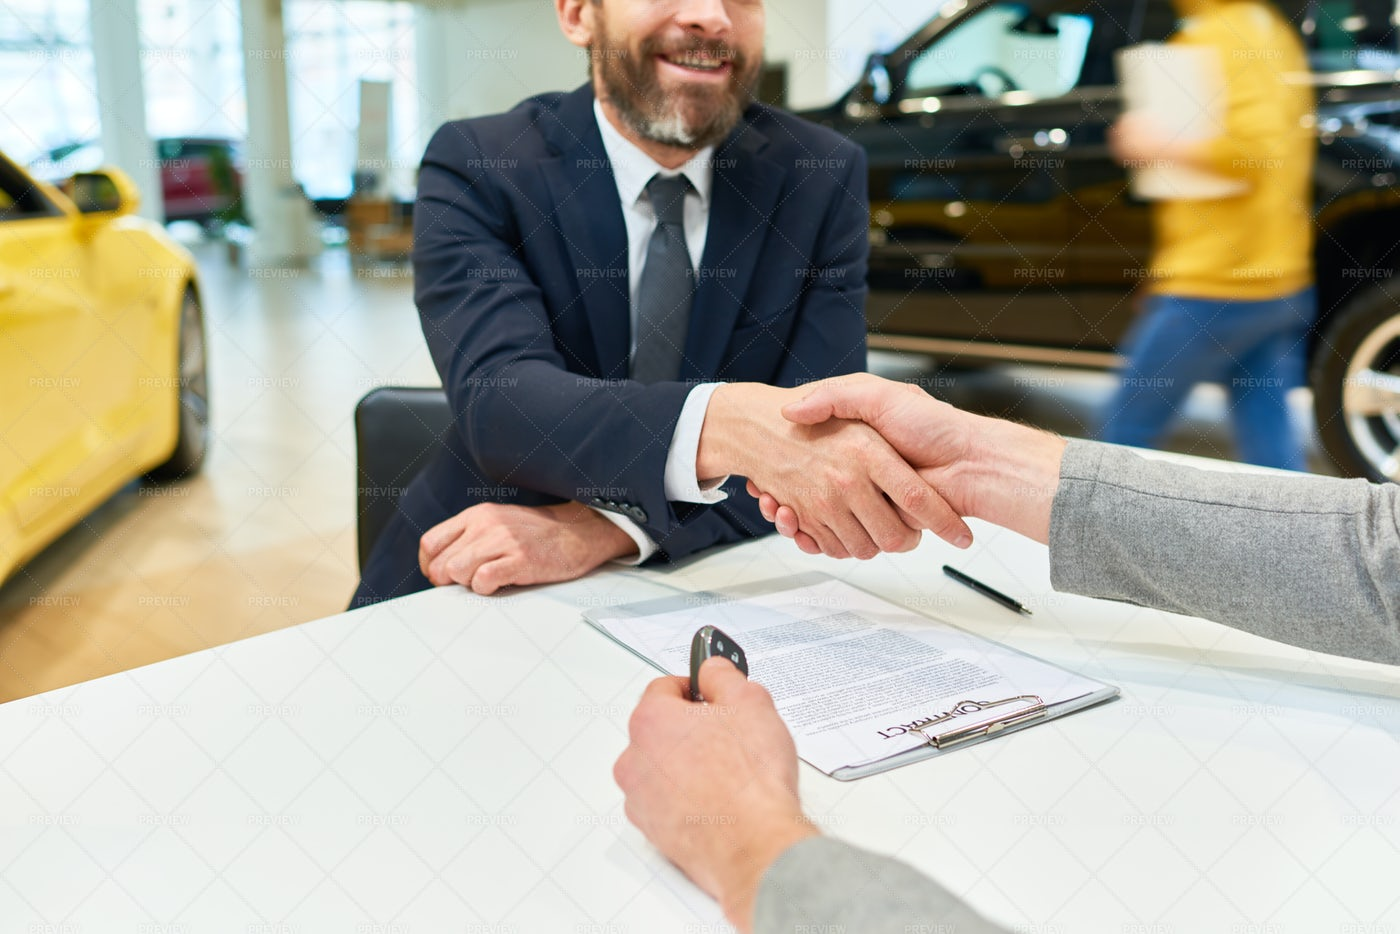 Business Deal In Car Showroom: Stock Photos